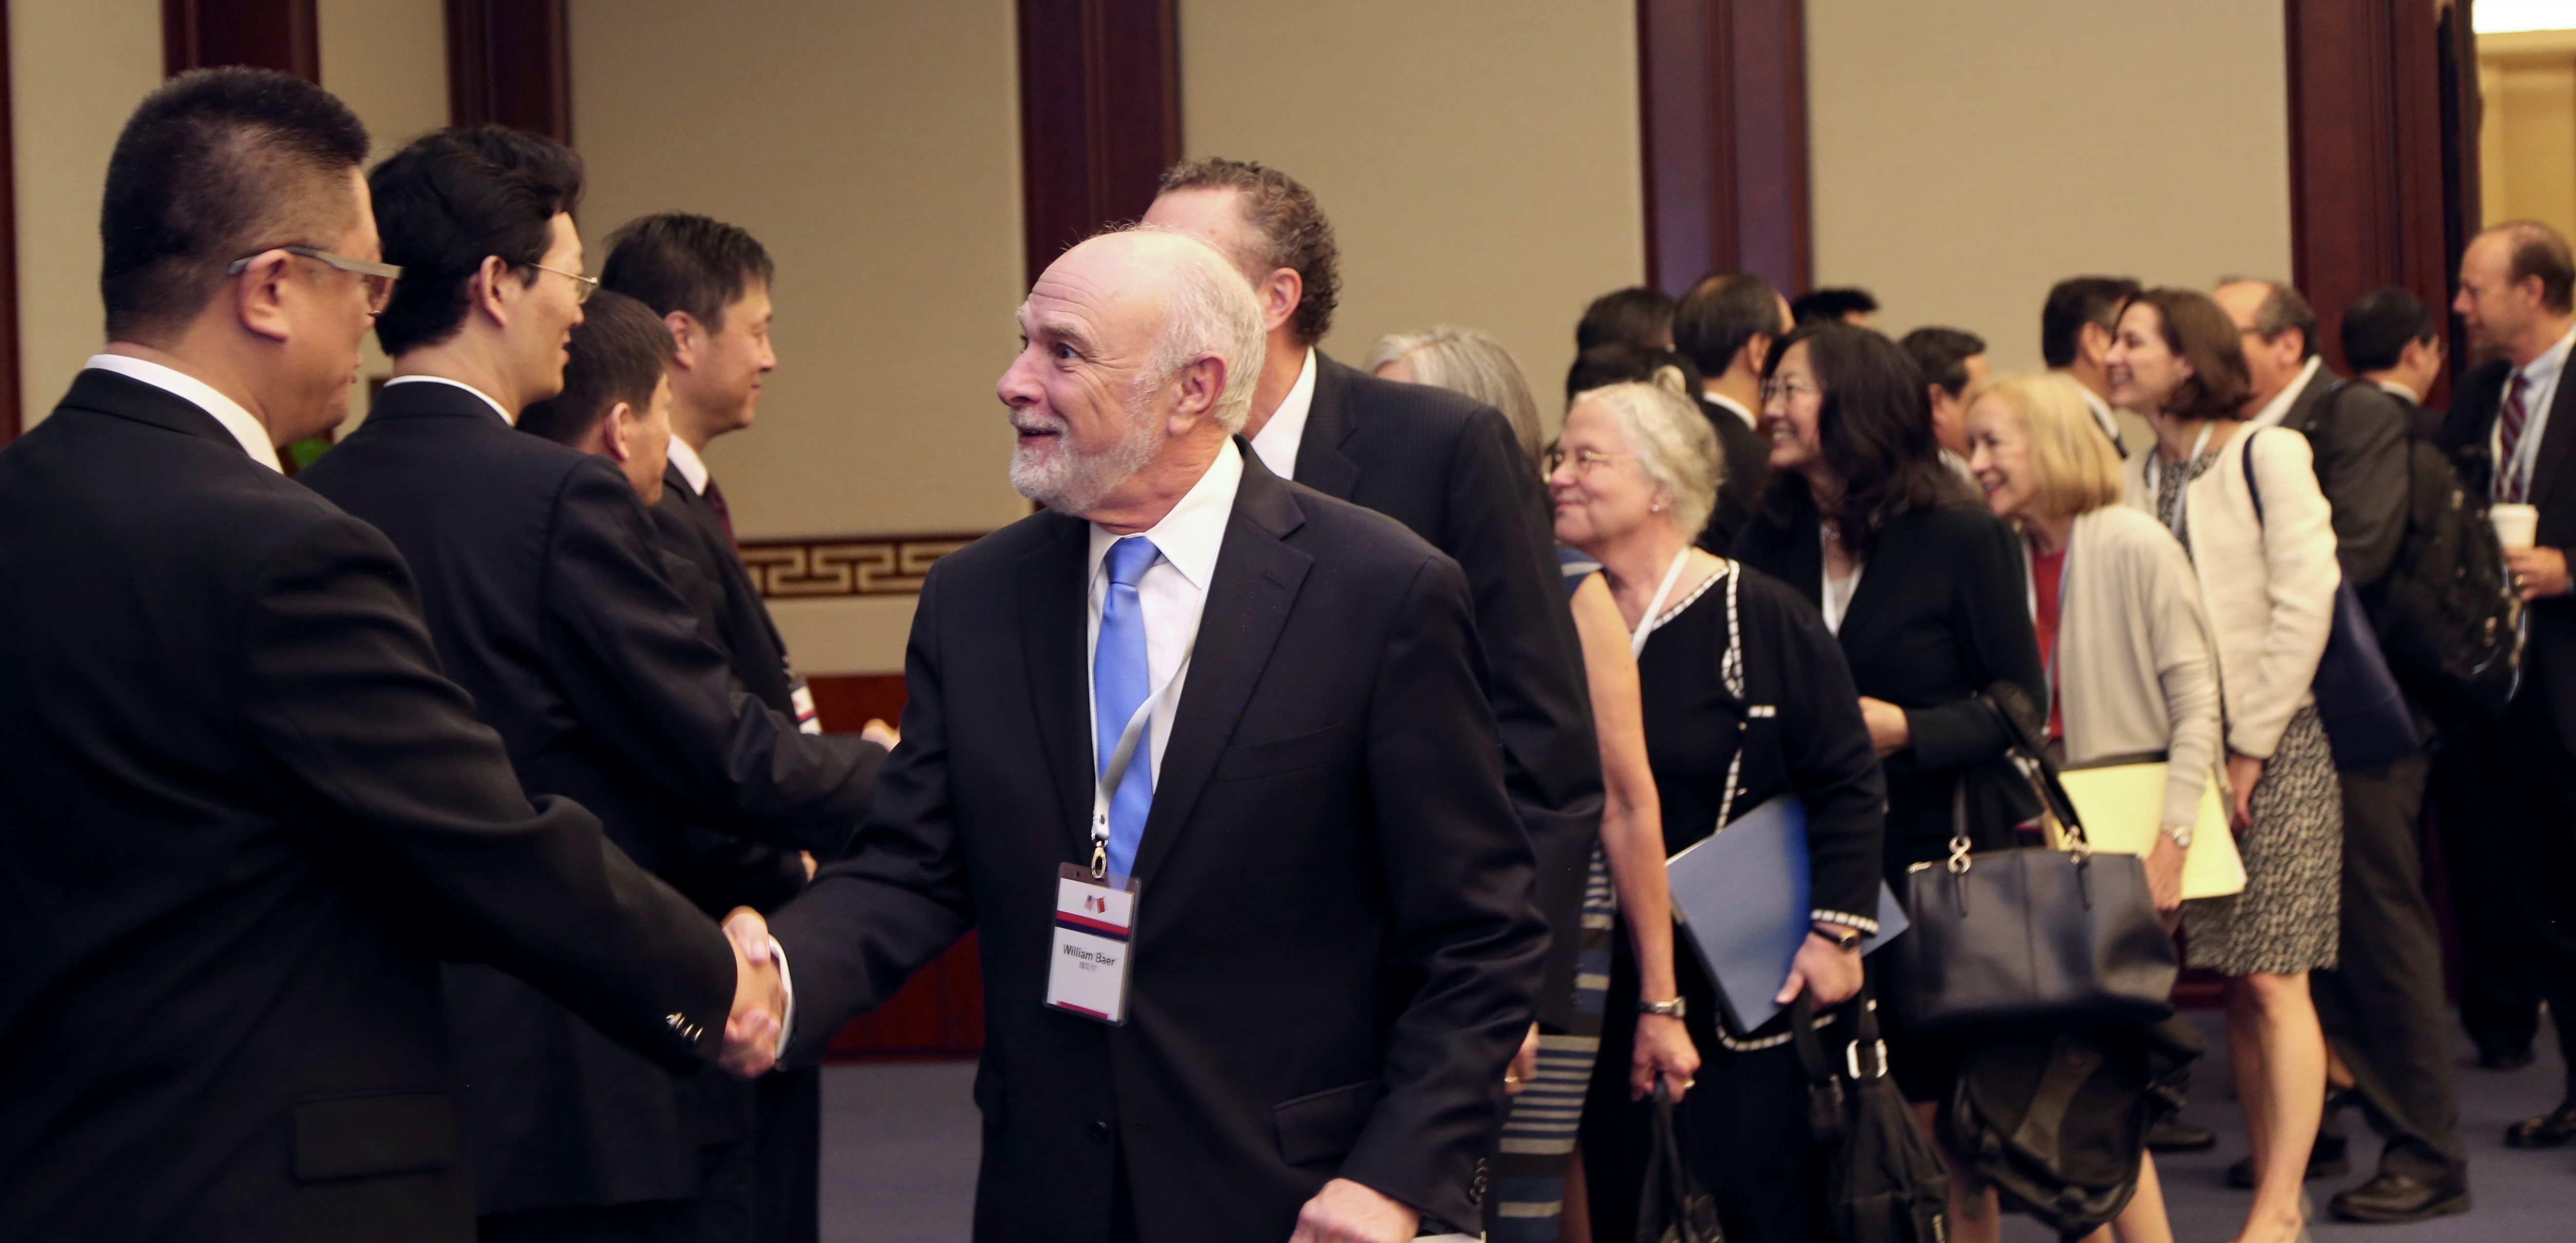 Principal Deputy Associate Attorney General Bill Baer greets Jiang Wei, the Vice Chairman of the Central Leading Group on Judicial System Reform of the Communist Party of China, at the dialogue, which took place Aug. 3 and 4 in Beijing.  The U.S. delegation included officials from the Departments of Justice, Commerce and State and from the Office of the U.S. Trade Representative.  (Photo by Jake Miller, U.S. Department of State)